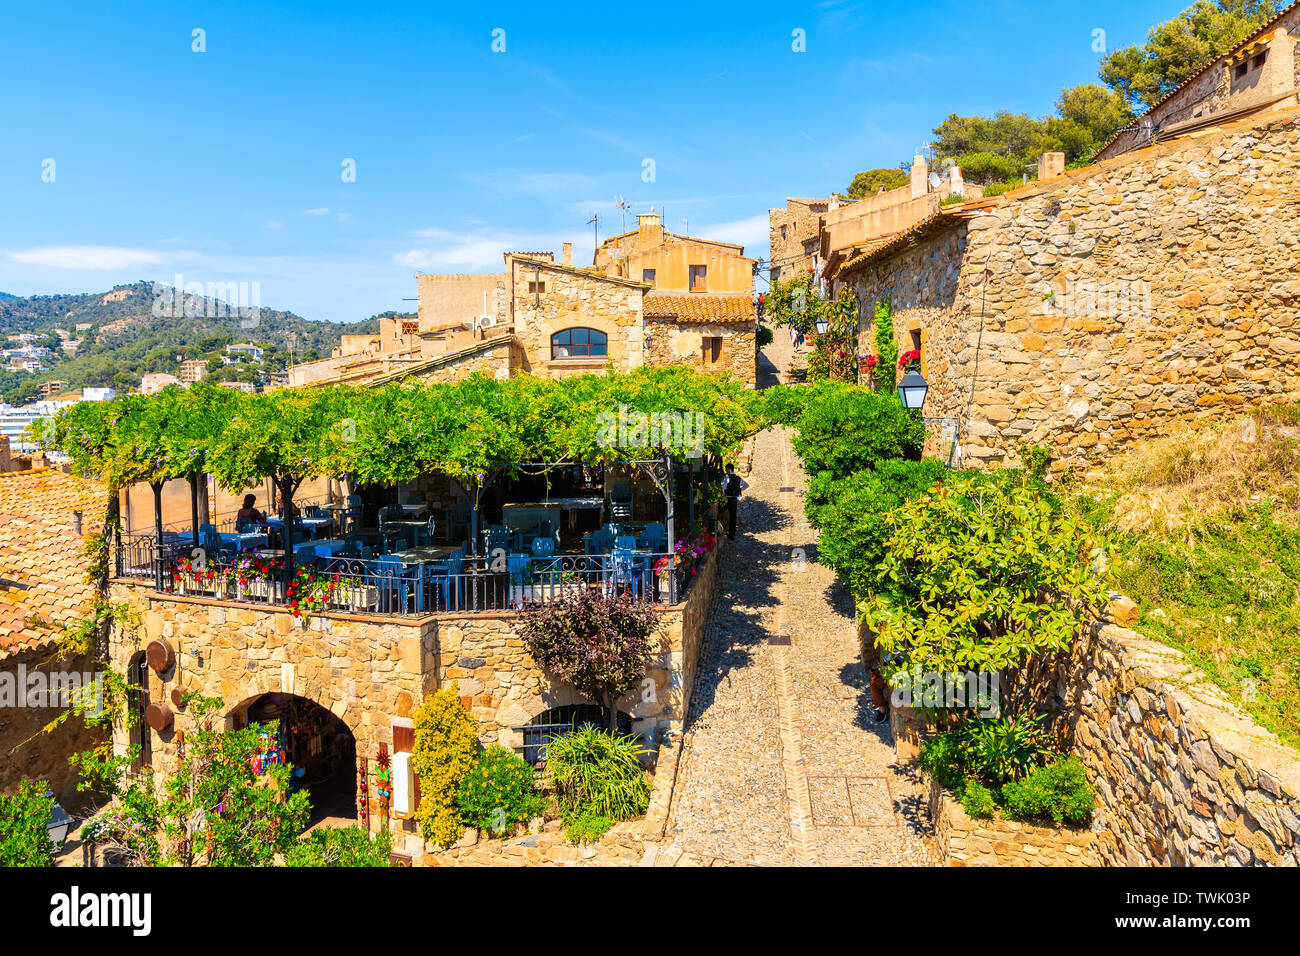 Narrow street with stone houses in old town in Tossa de Mar, Costa Brava, Spain Stock Photo